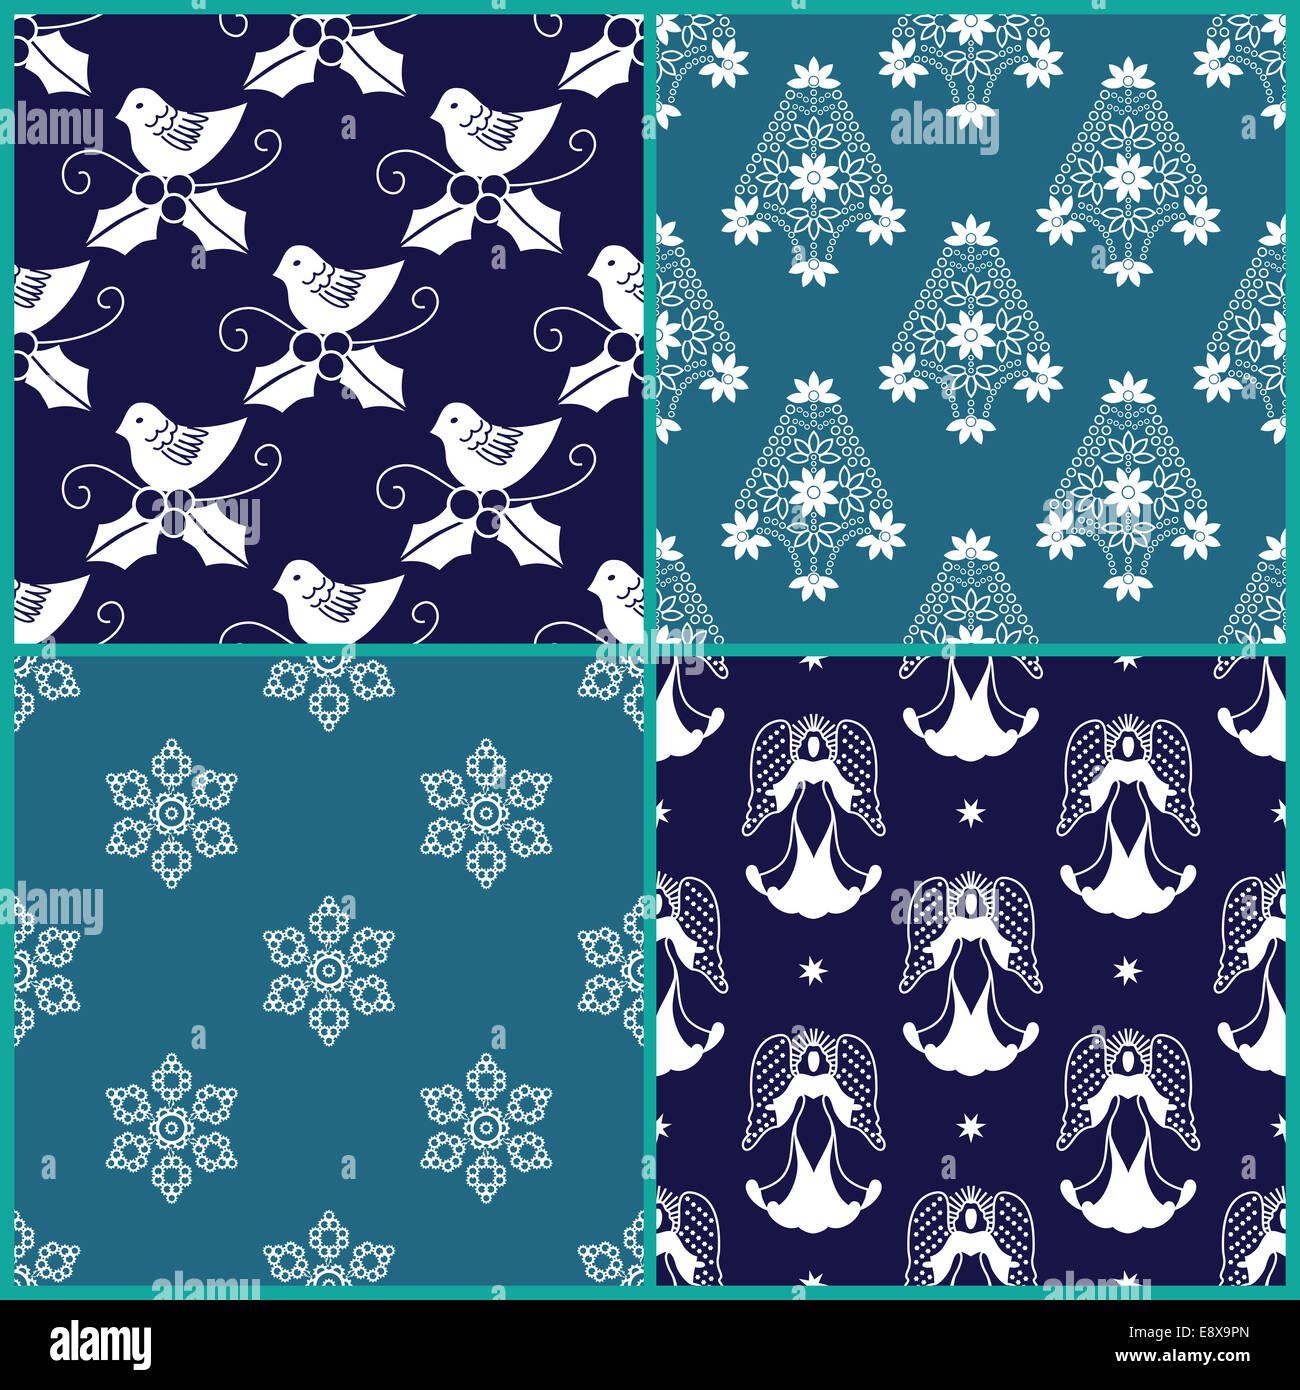 holly gift wrap xmas wrapping paper